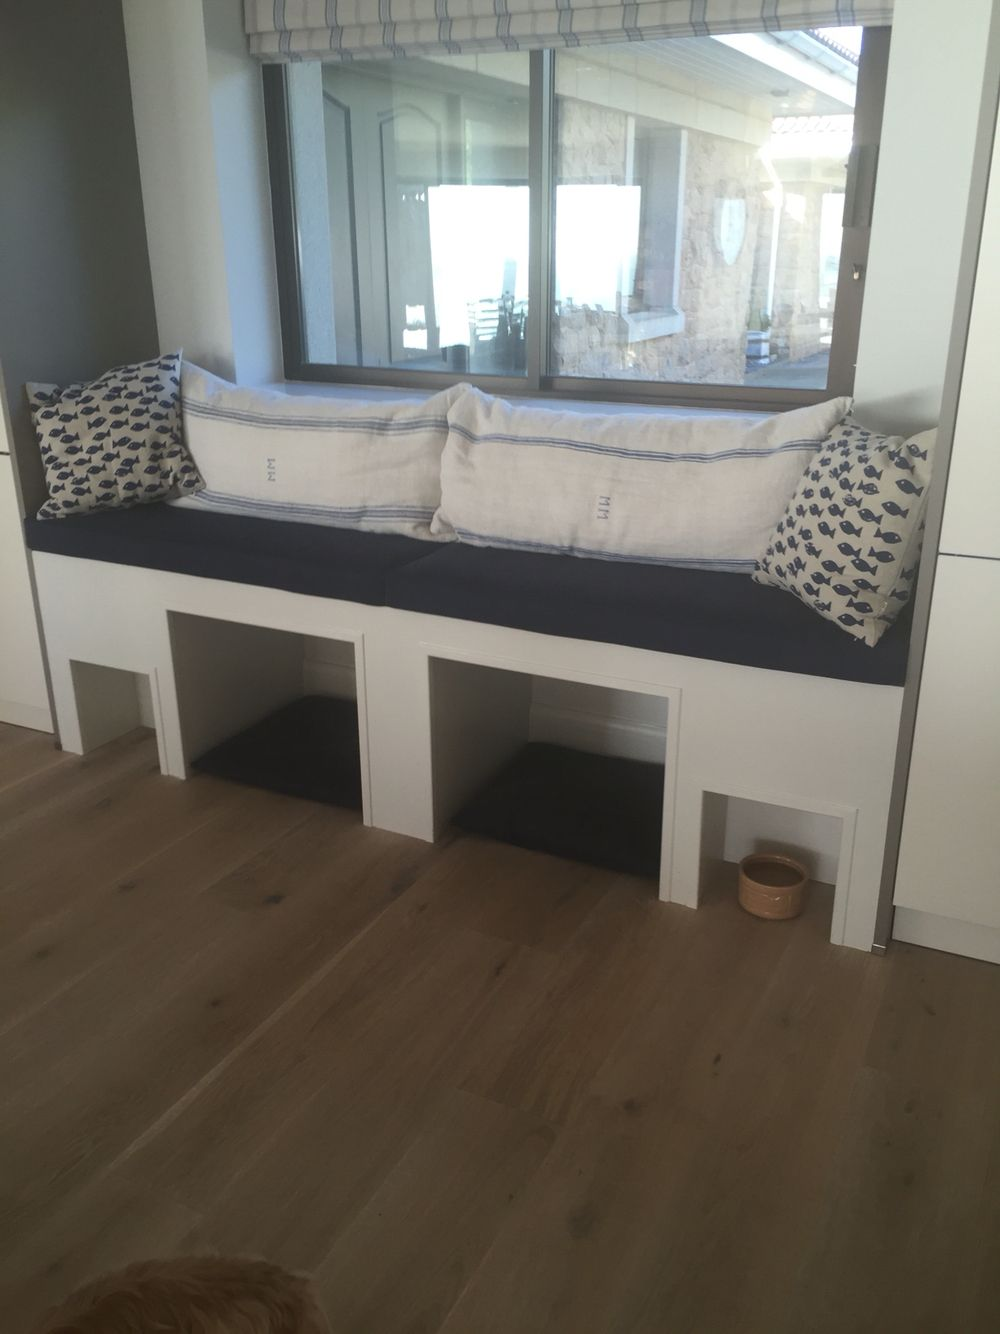 Built In Dogs Bed Window Seat Amp Feeding Area Built In Dog Bed Dog Bed Bench Home Room Design